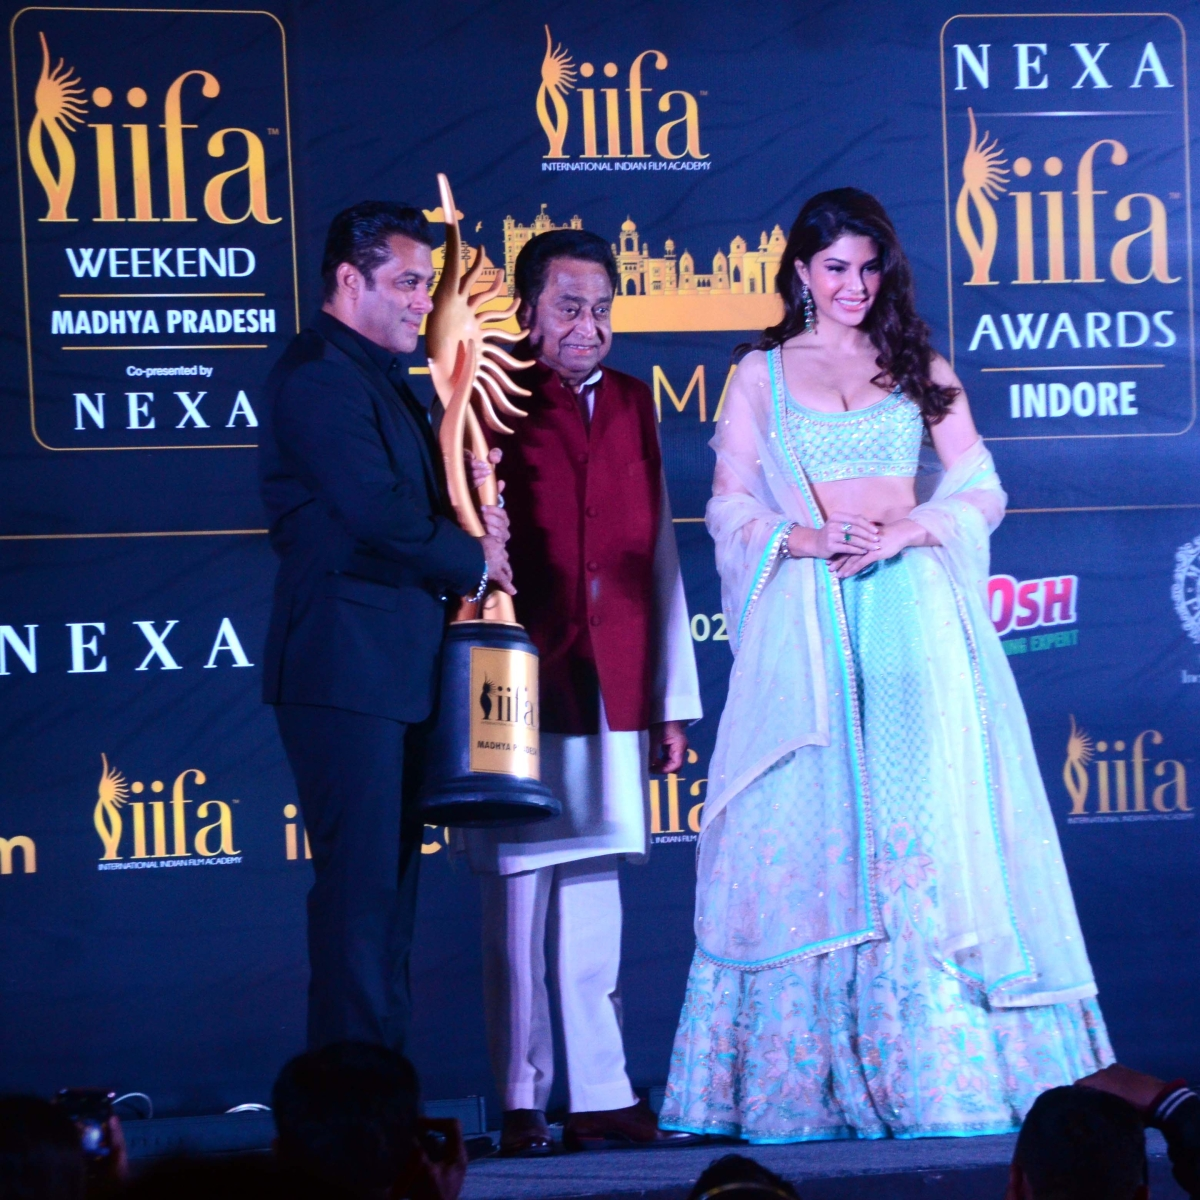 IIFA dedicated to tribal youth of Madhya Pradesh, CM Kamal Nath buys first ticket